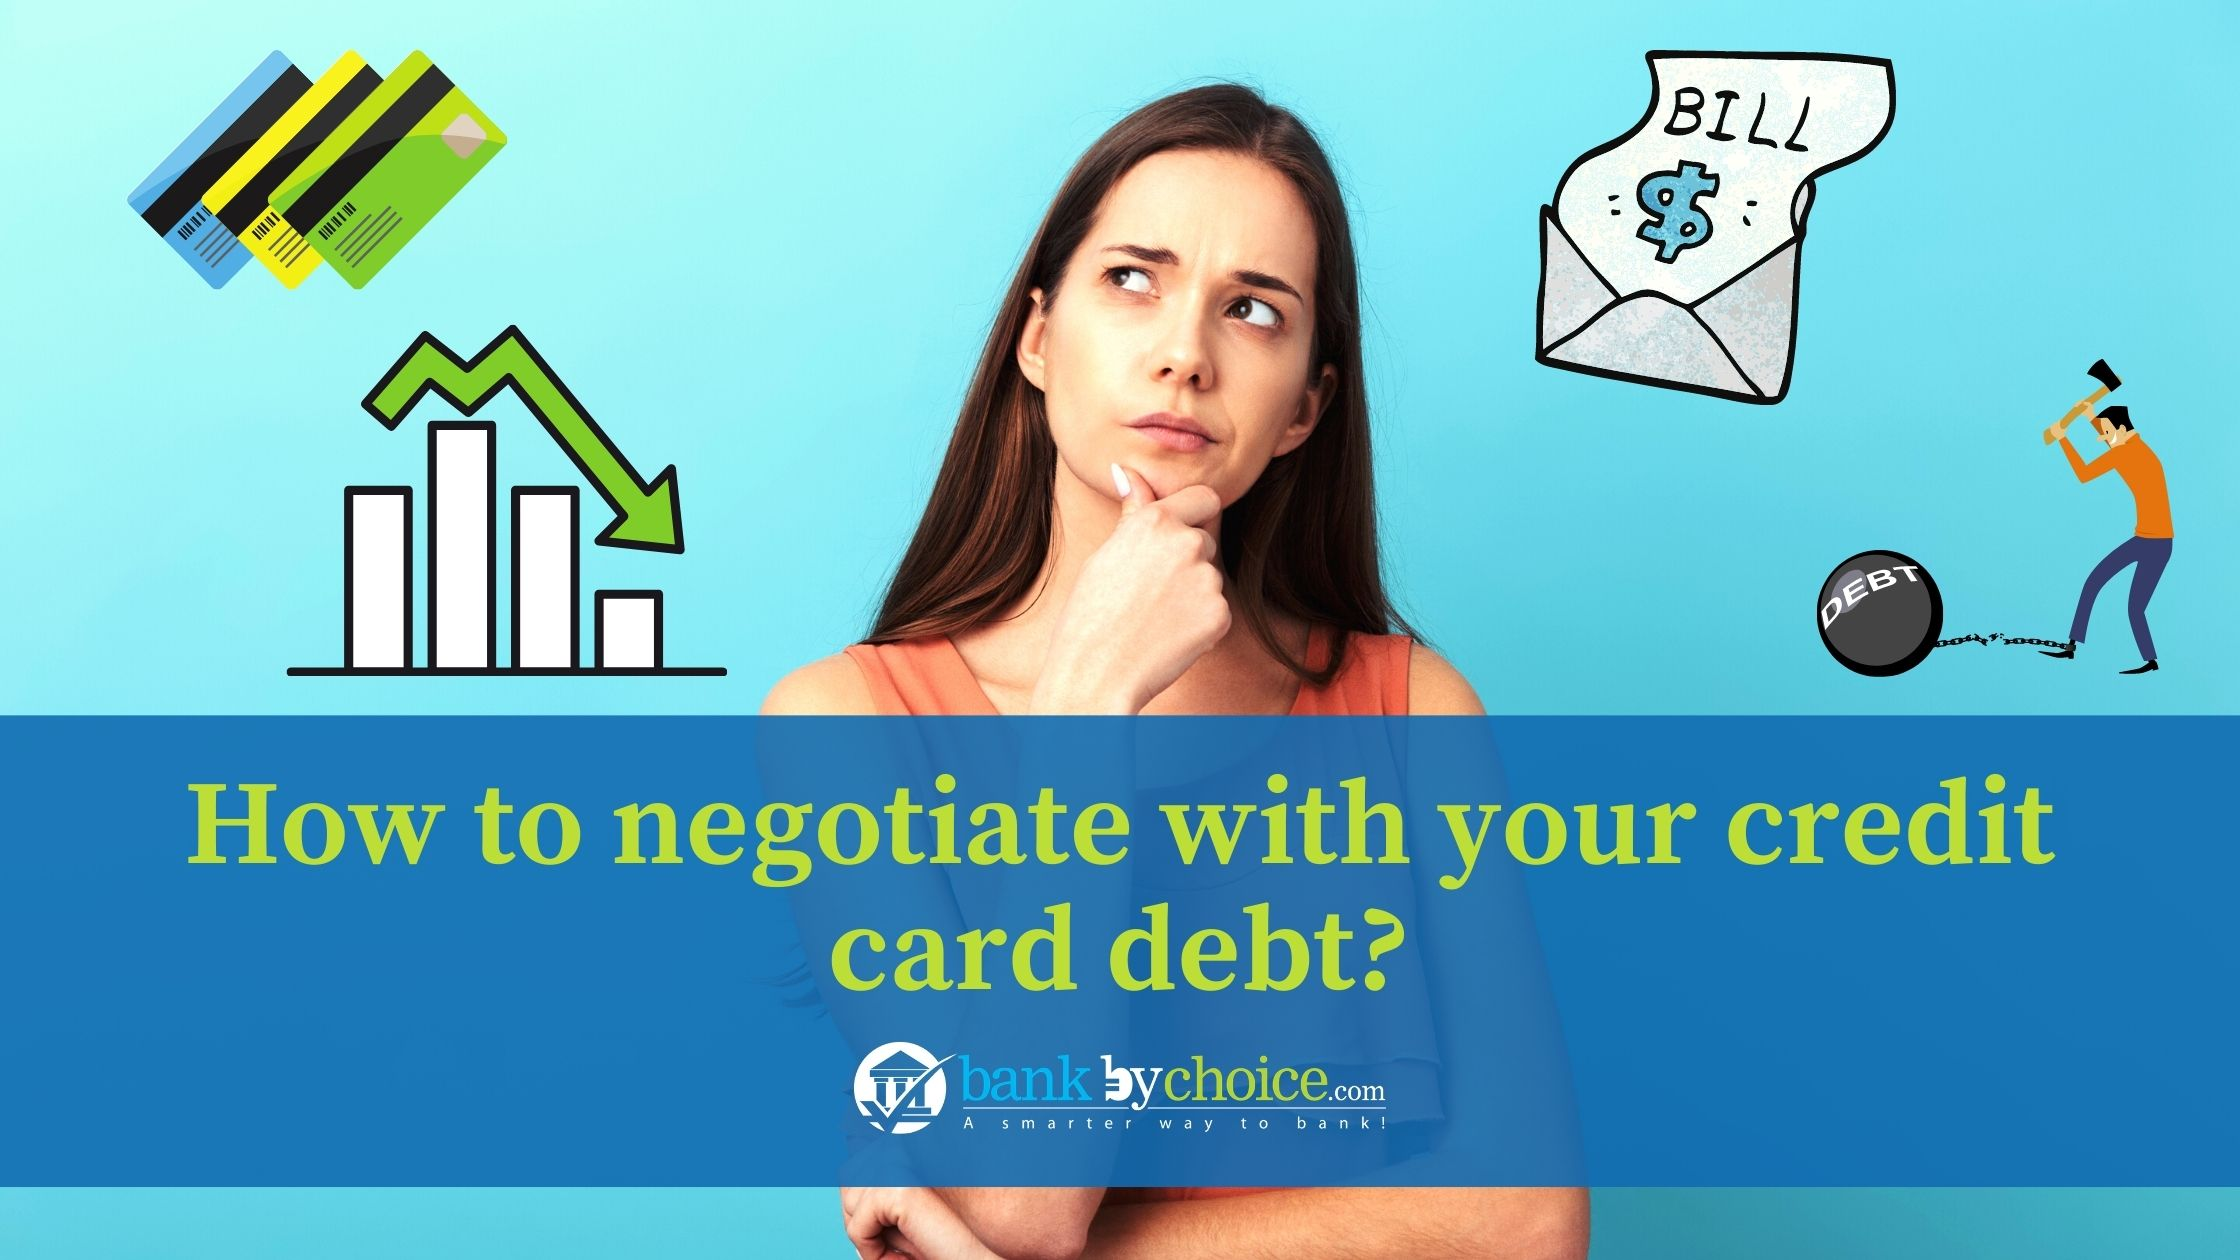 How to negotiate with your credit card debt?